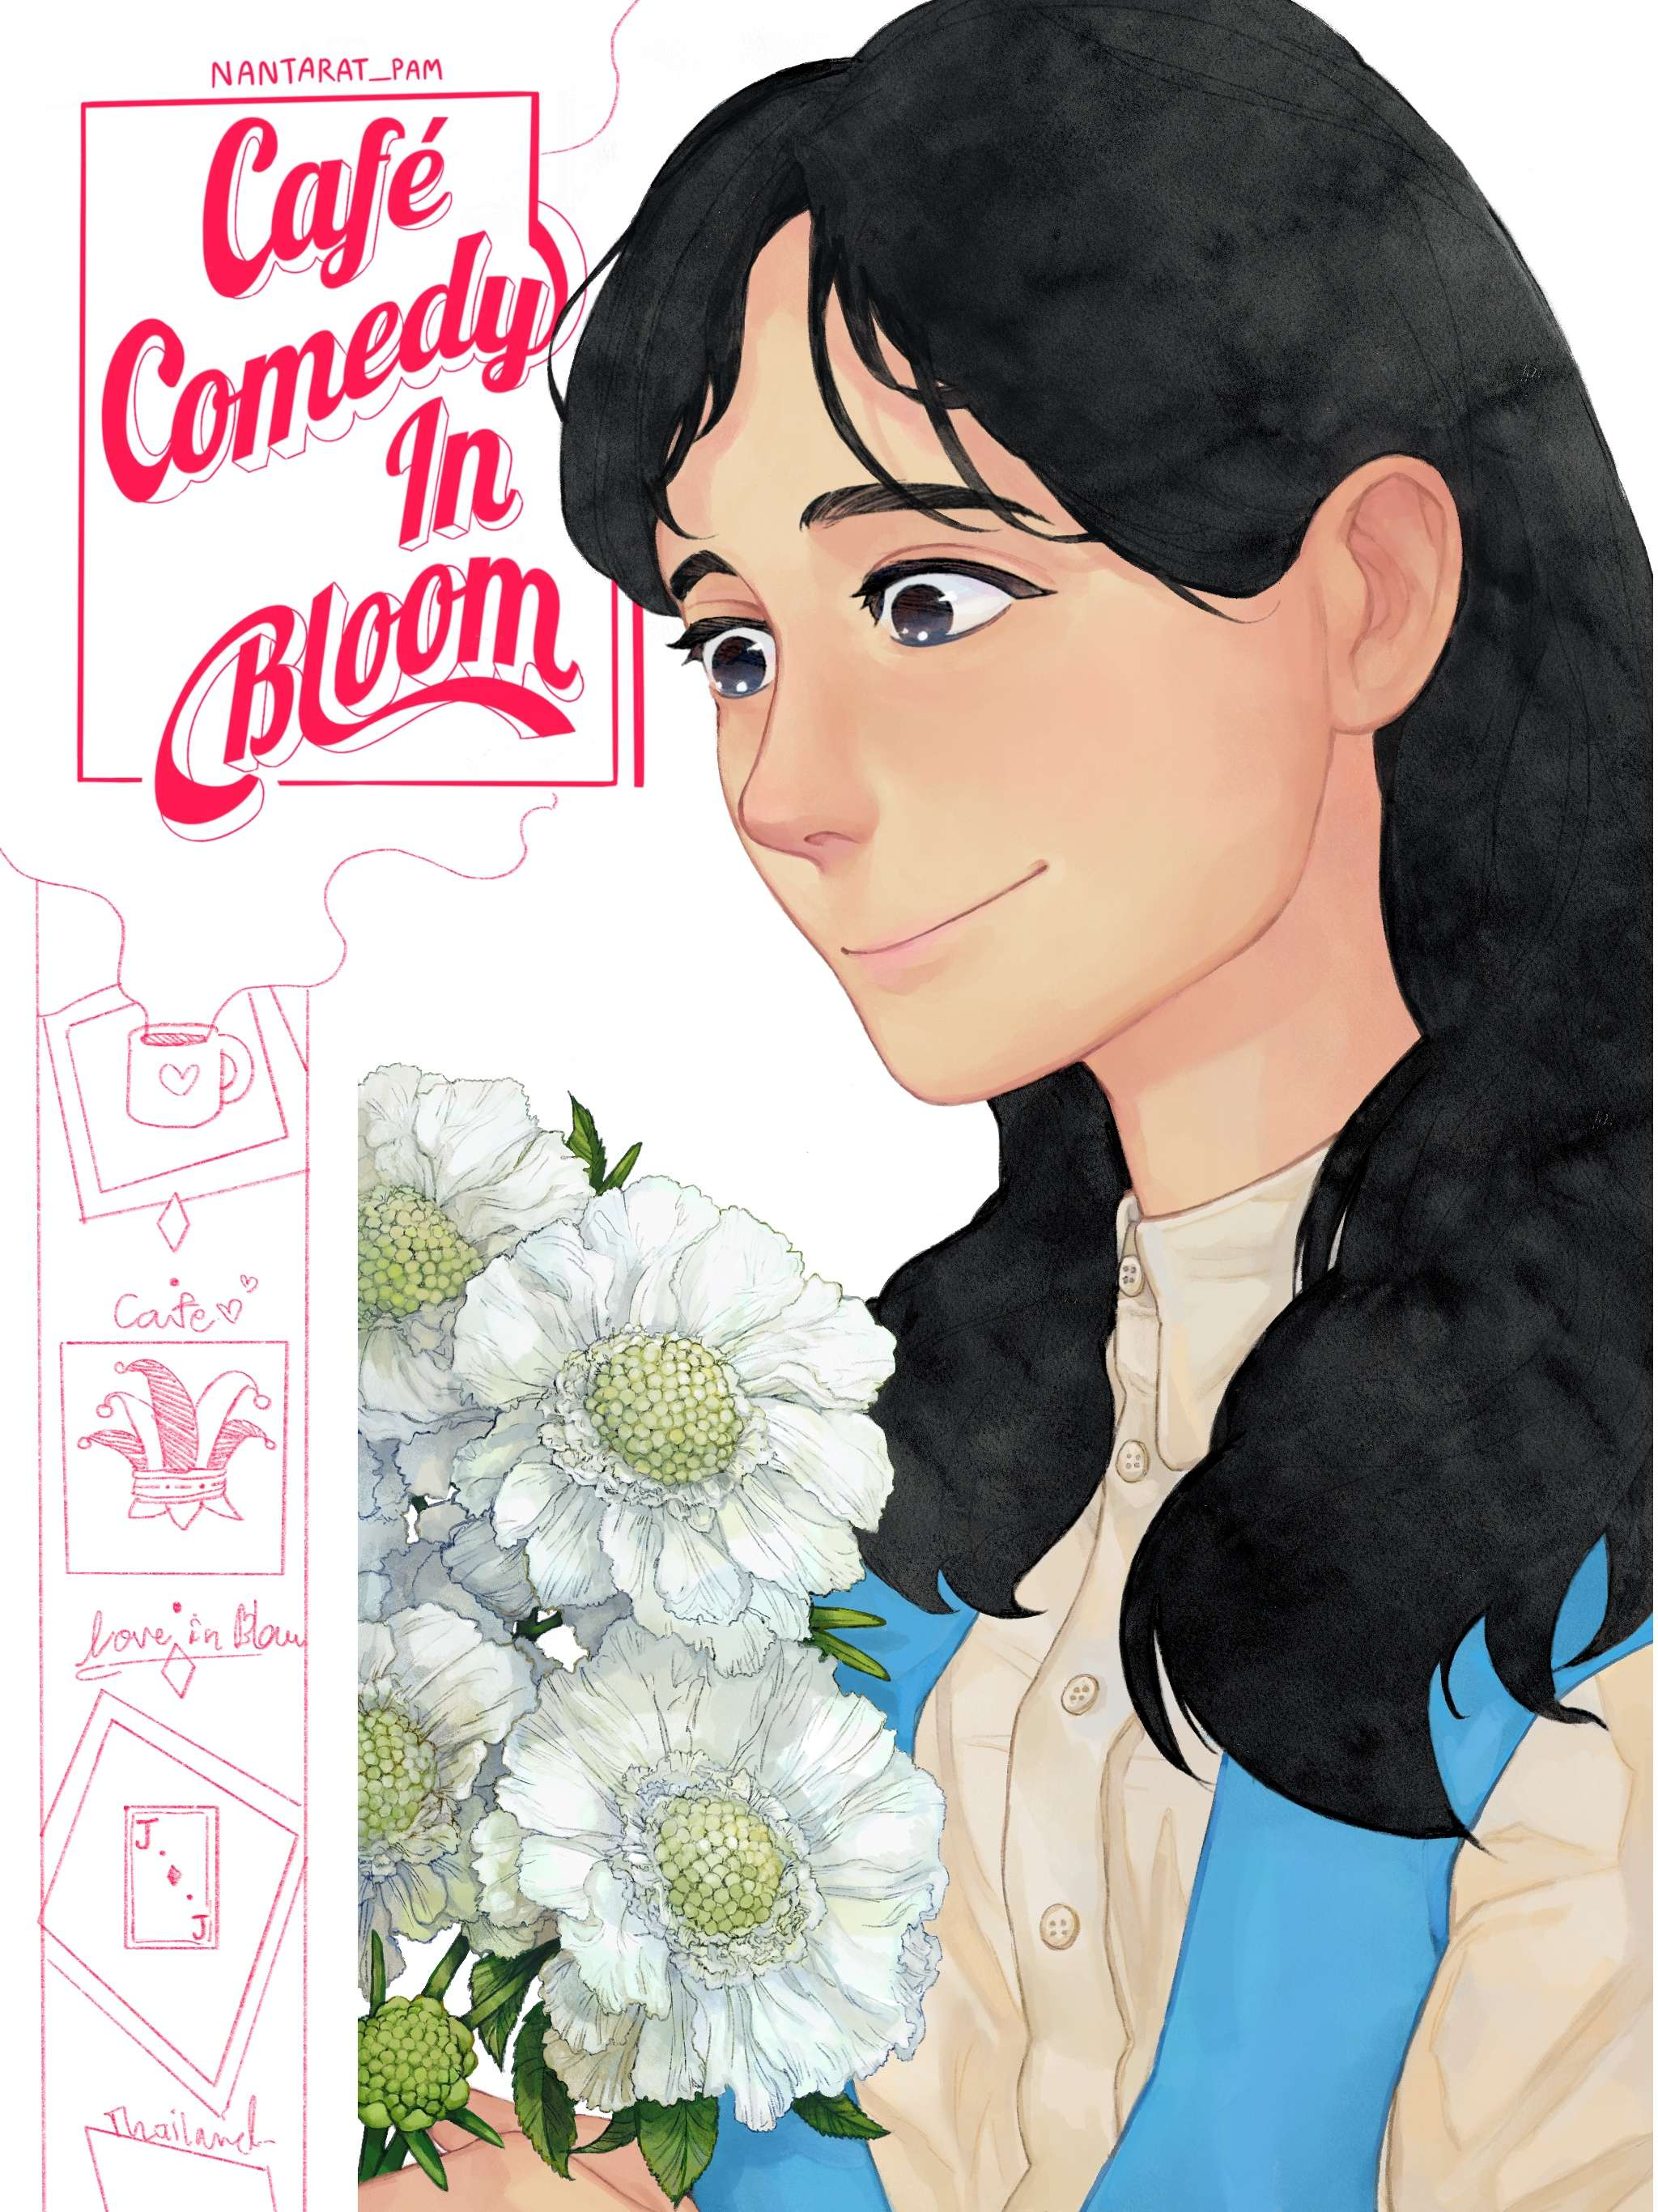 [UPDATED] Cafe Comedy In Bloom